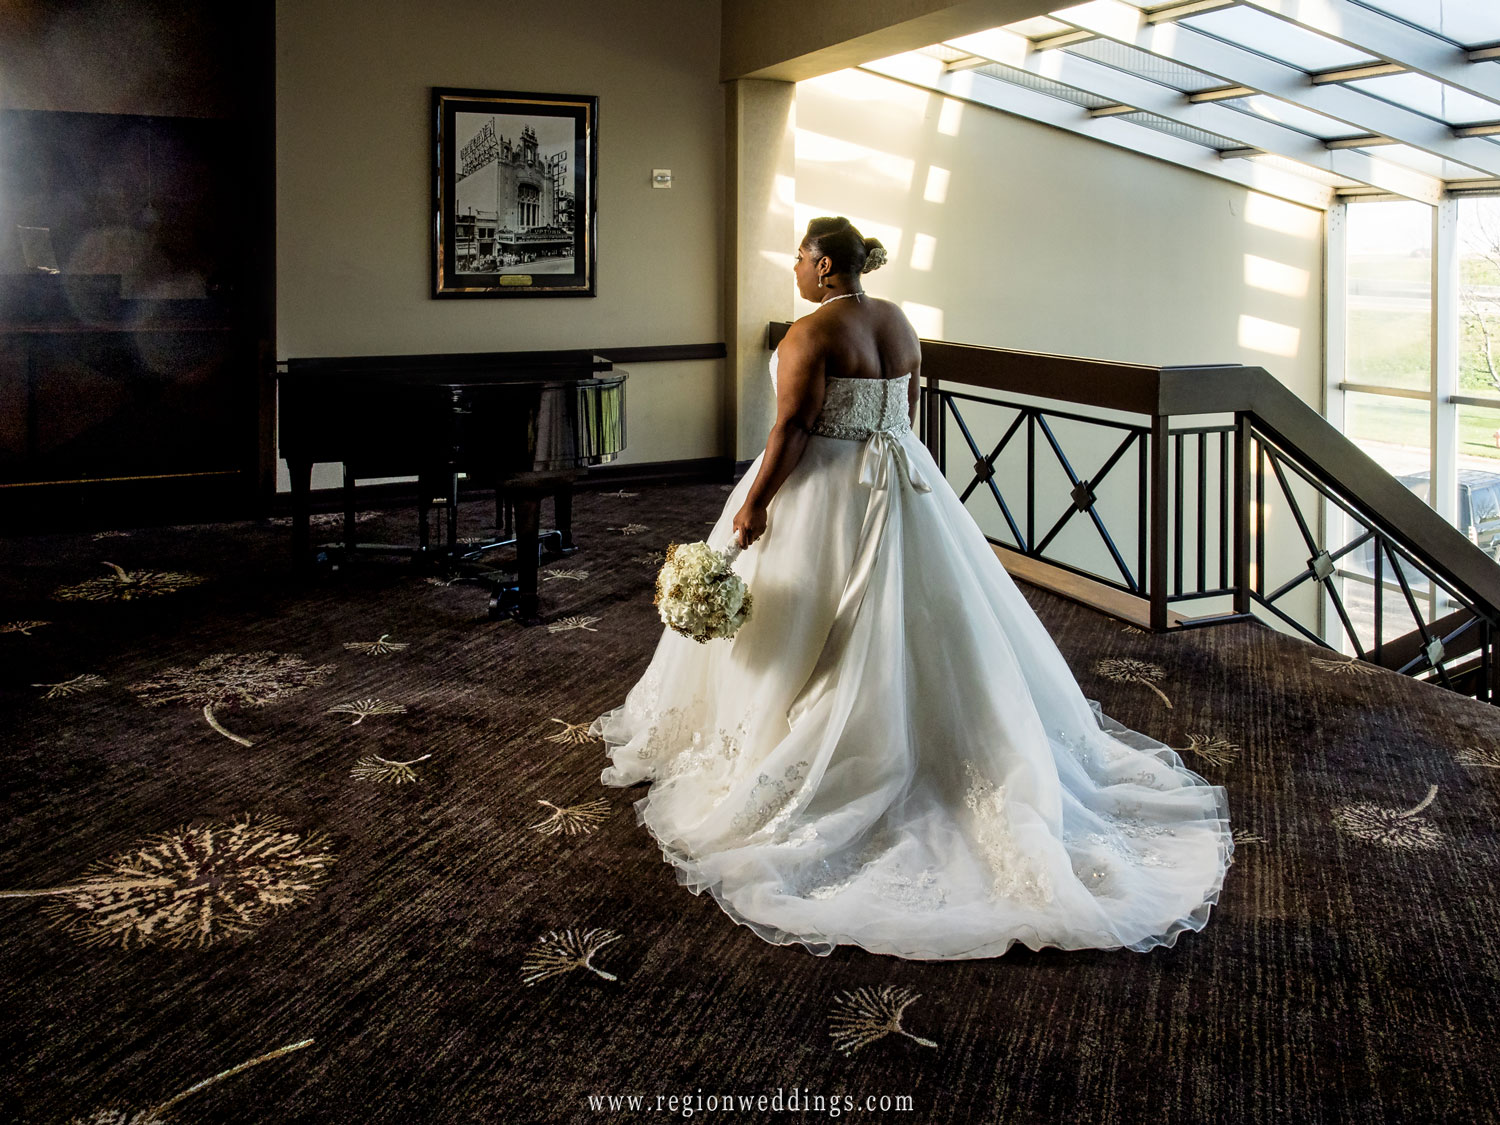 The bride shows off the back of her wedding dress in the hotel lobby in Merrillville.